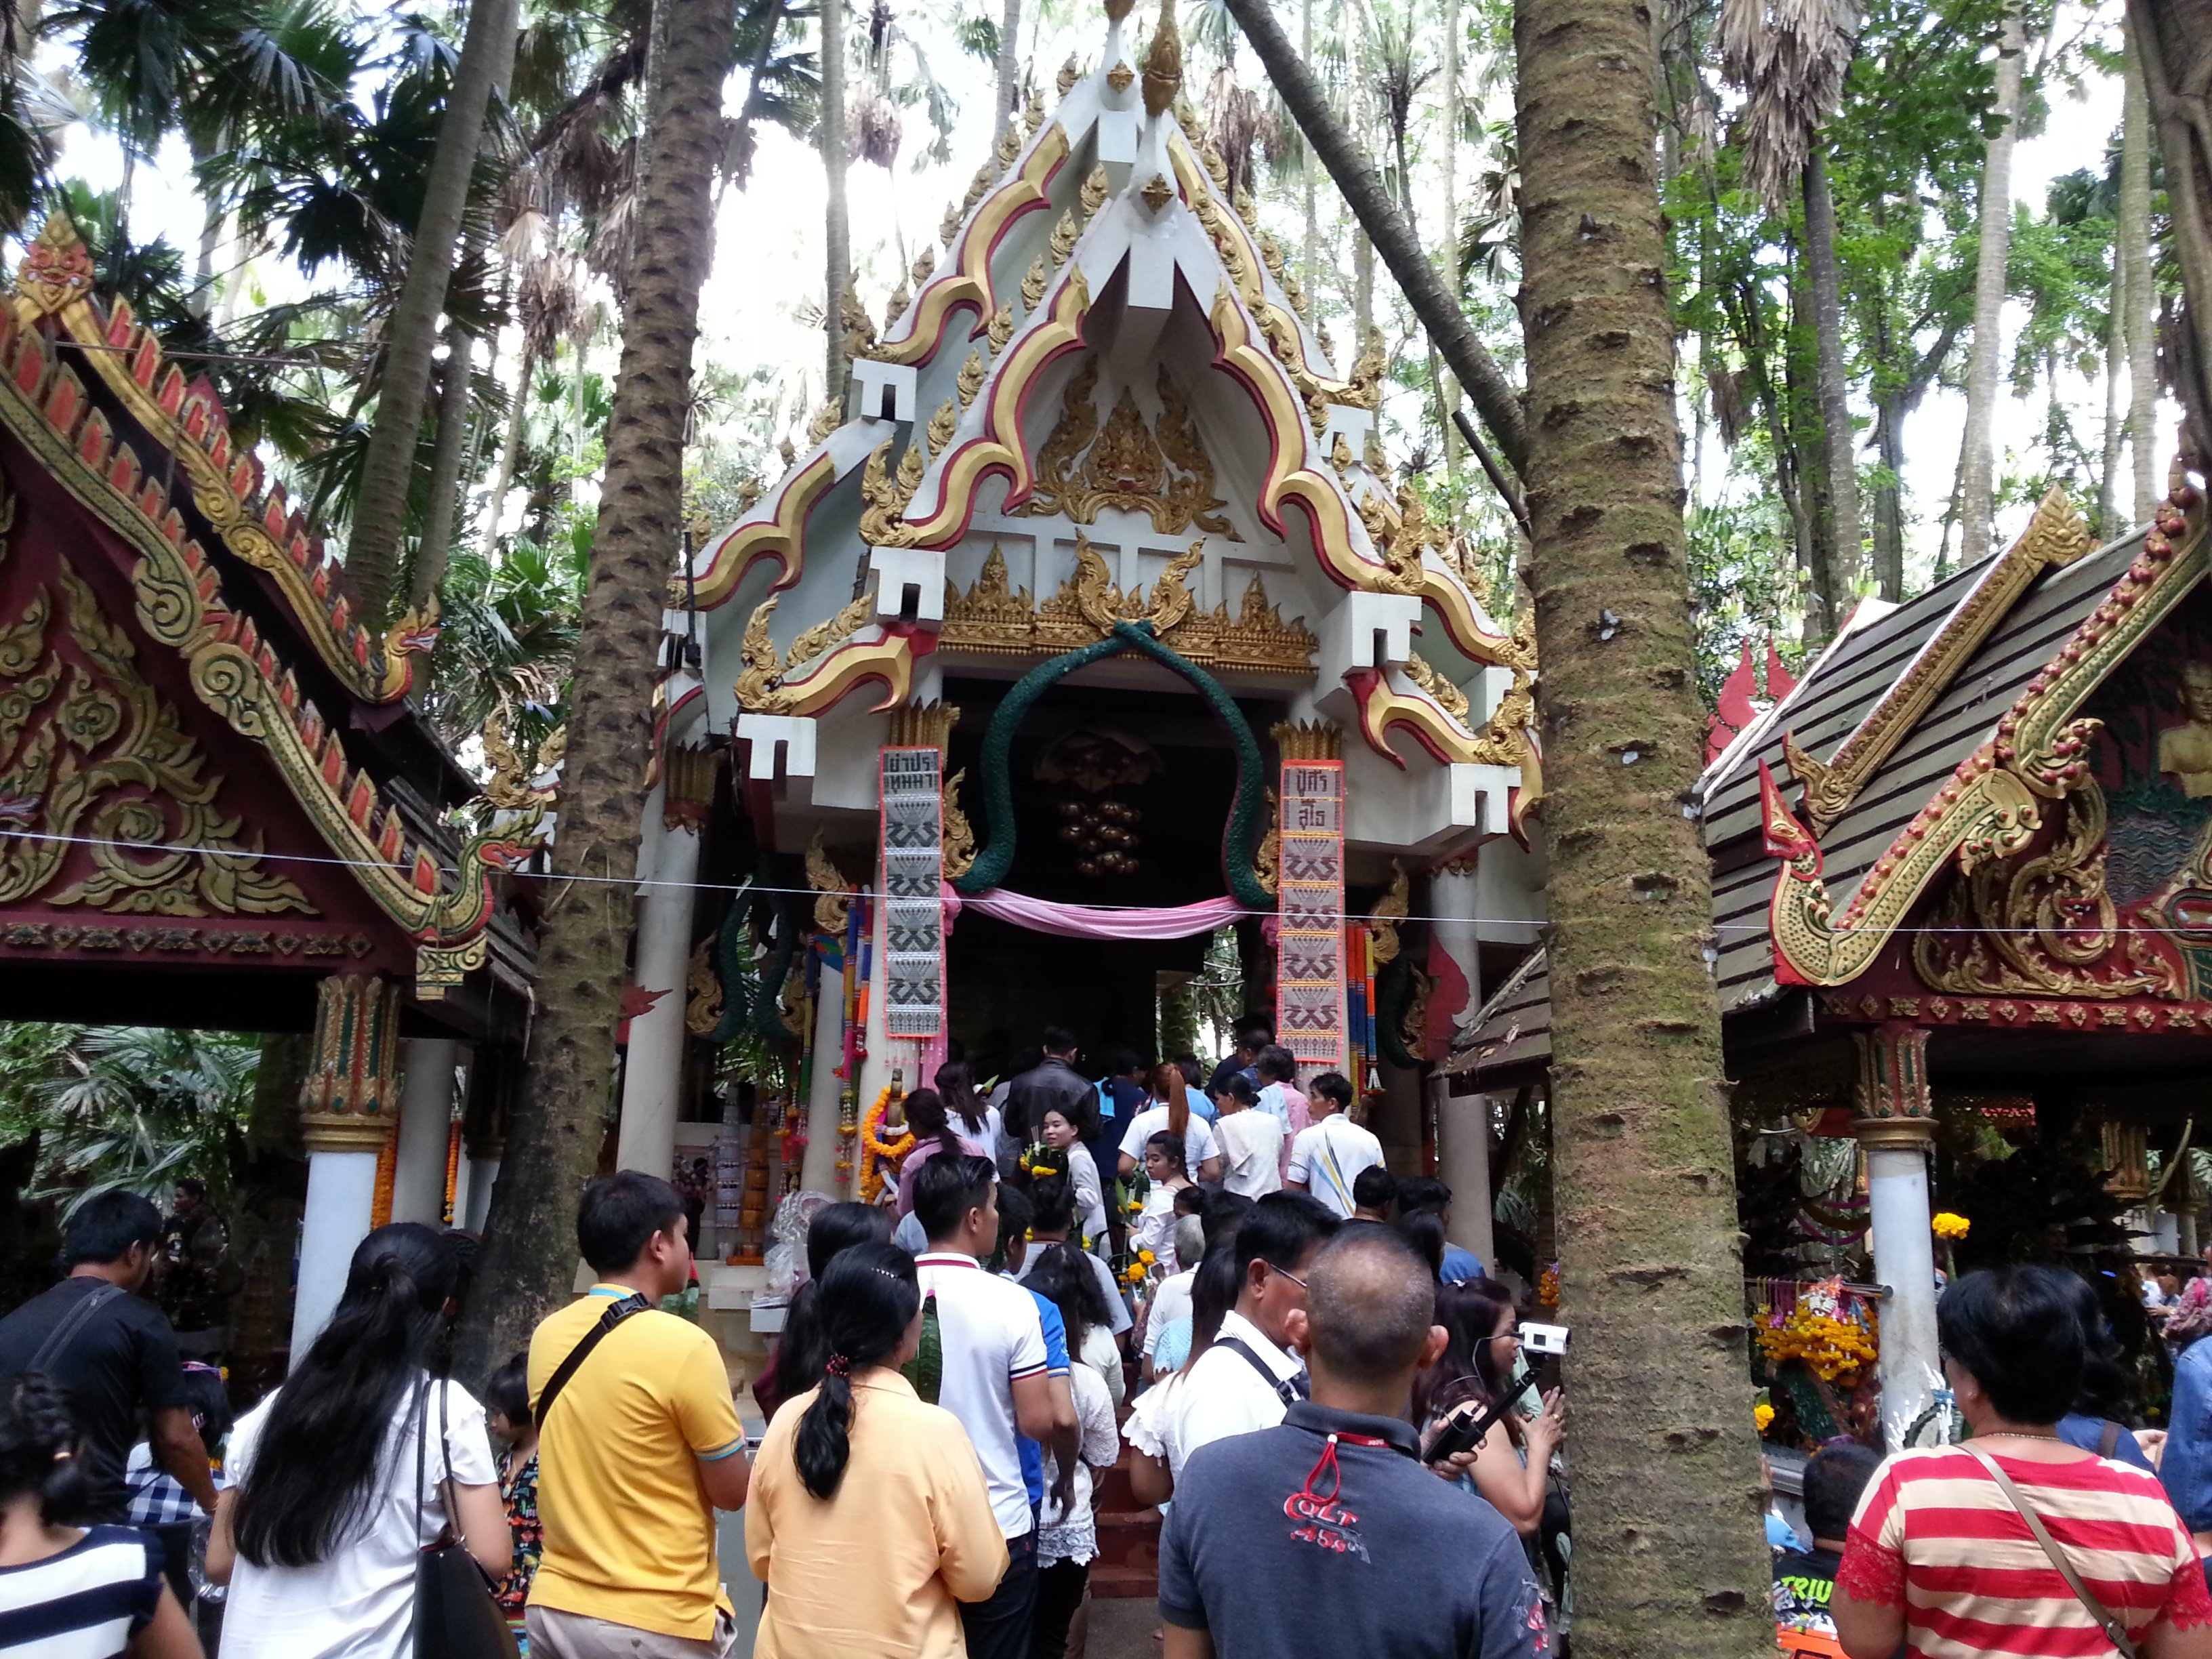 Three shrines in Wat Kham Chanot Forest